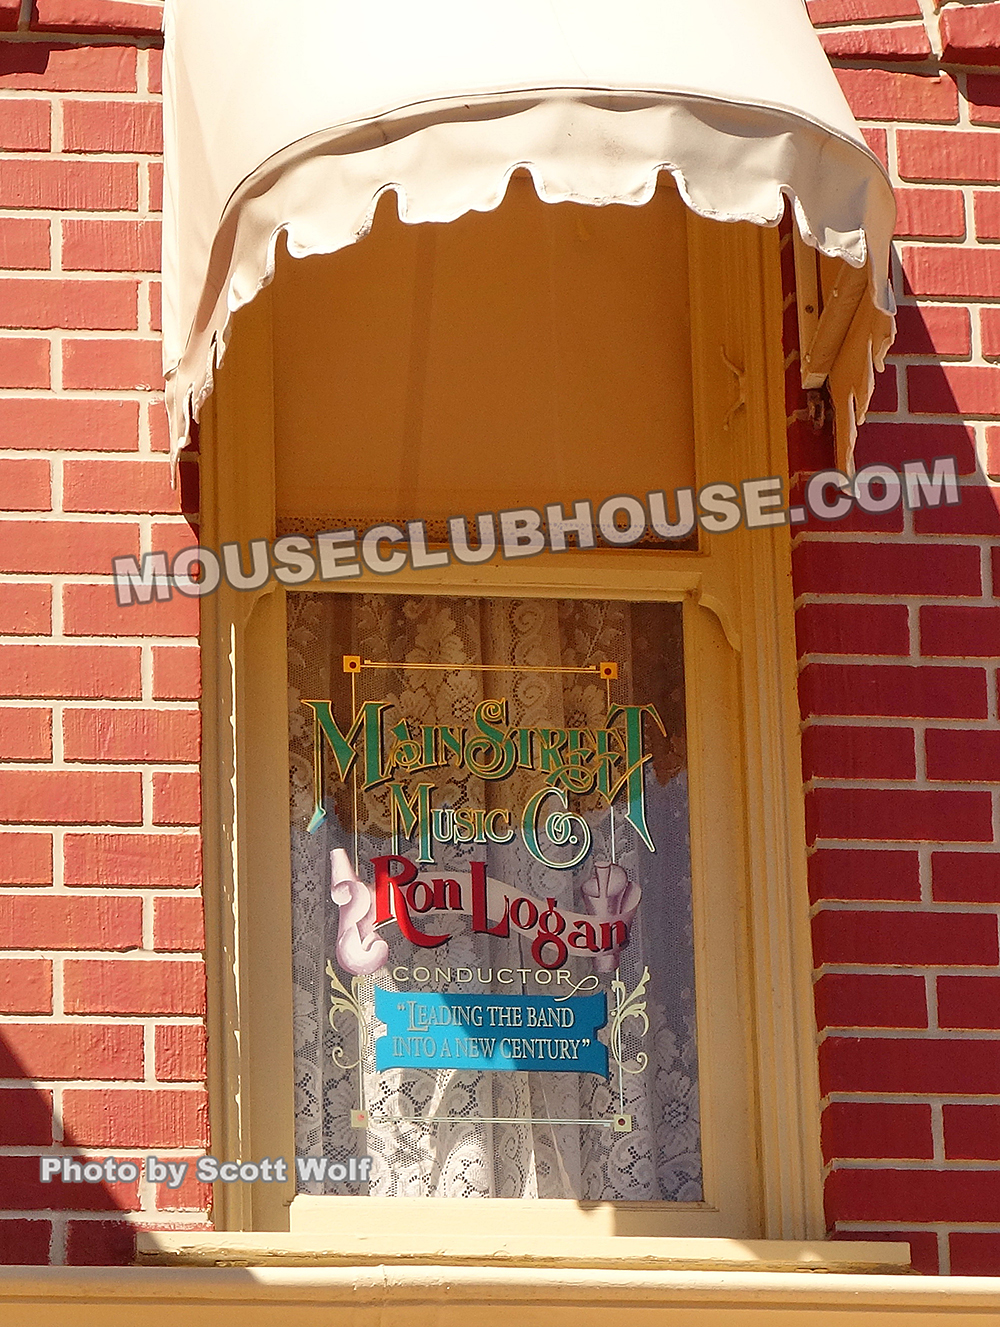 Ron Logan's windows on Main Street in the Magic Kingdom in Walt Disney World